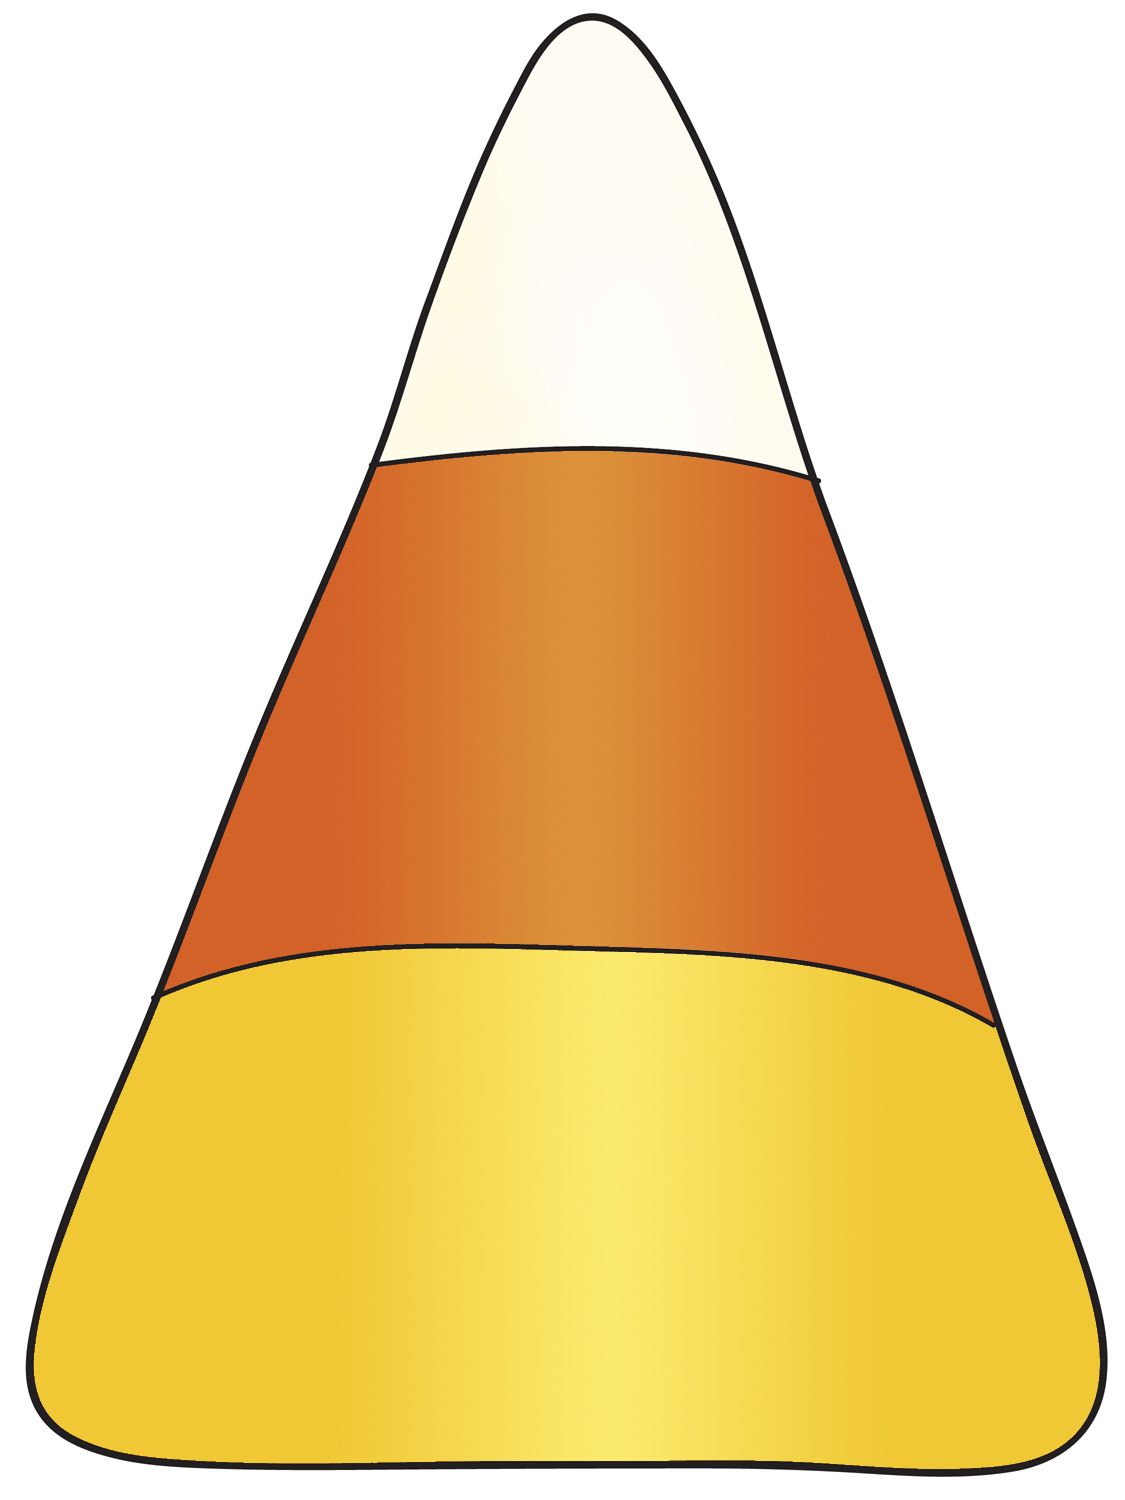 Candy Corn Template Printable